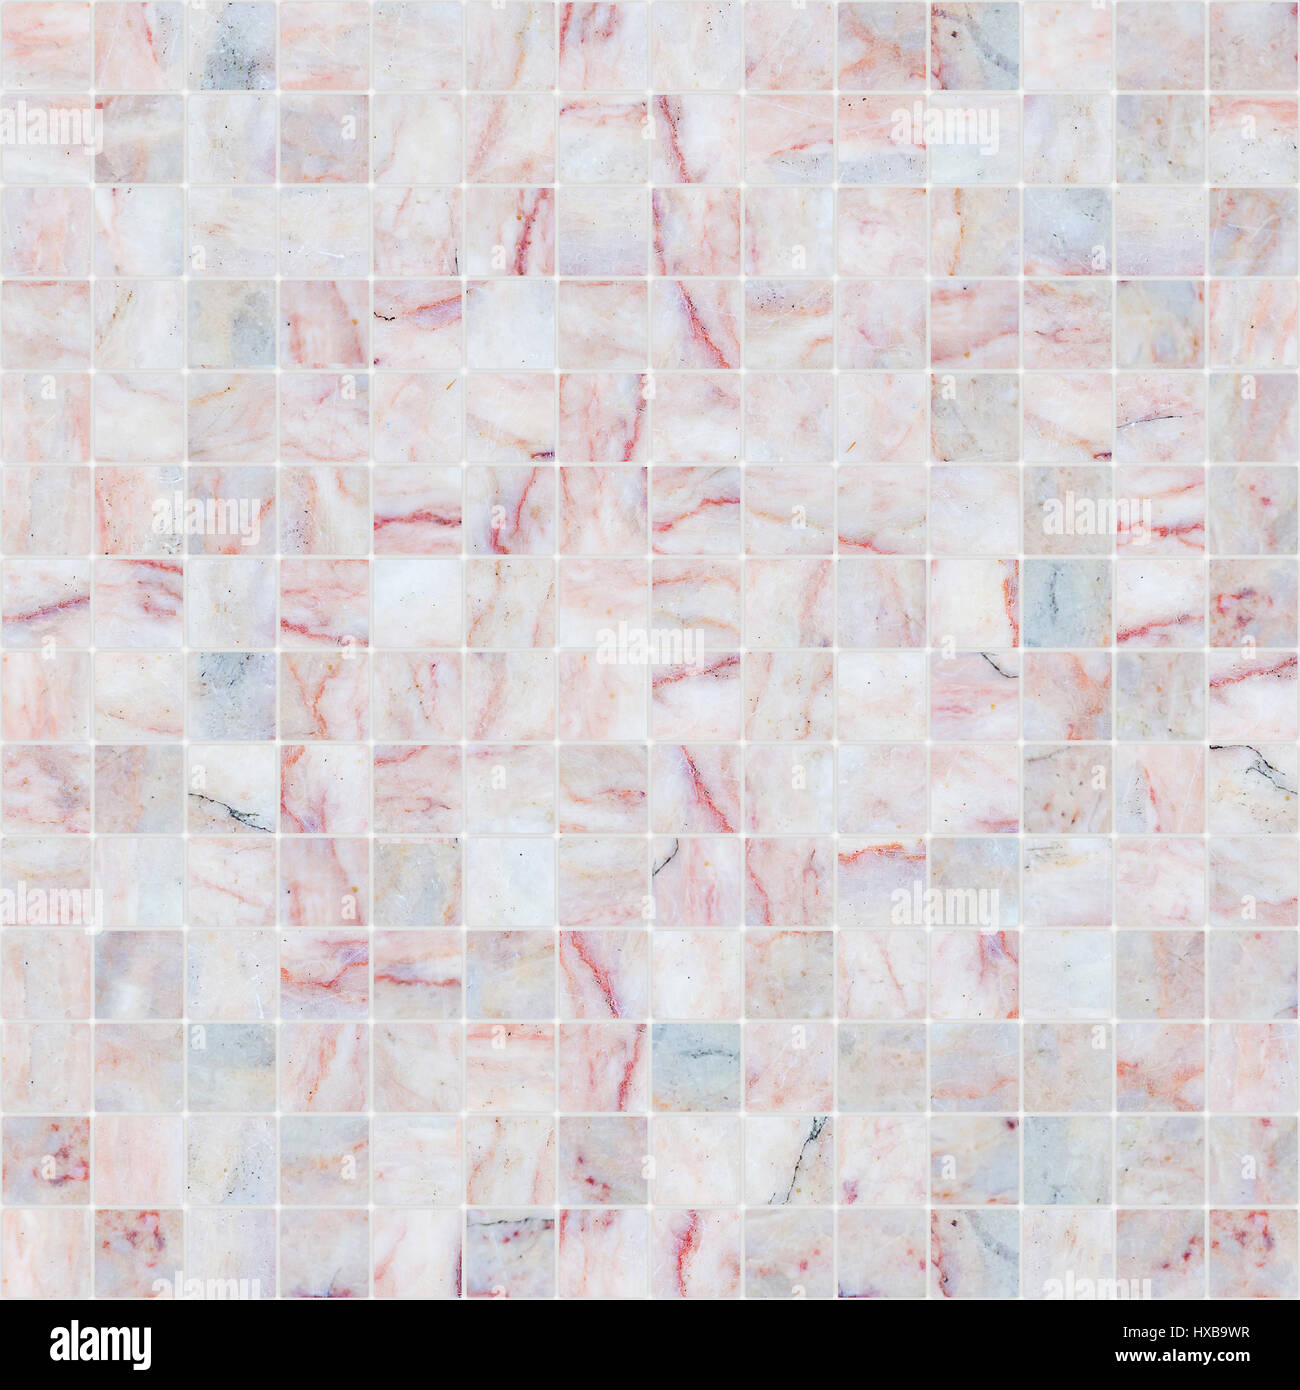 Pink White Mosaic Marble Tile Texture Seamless